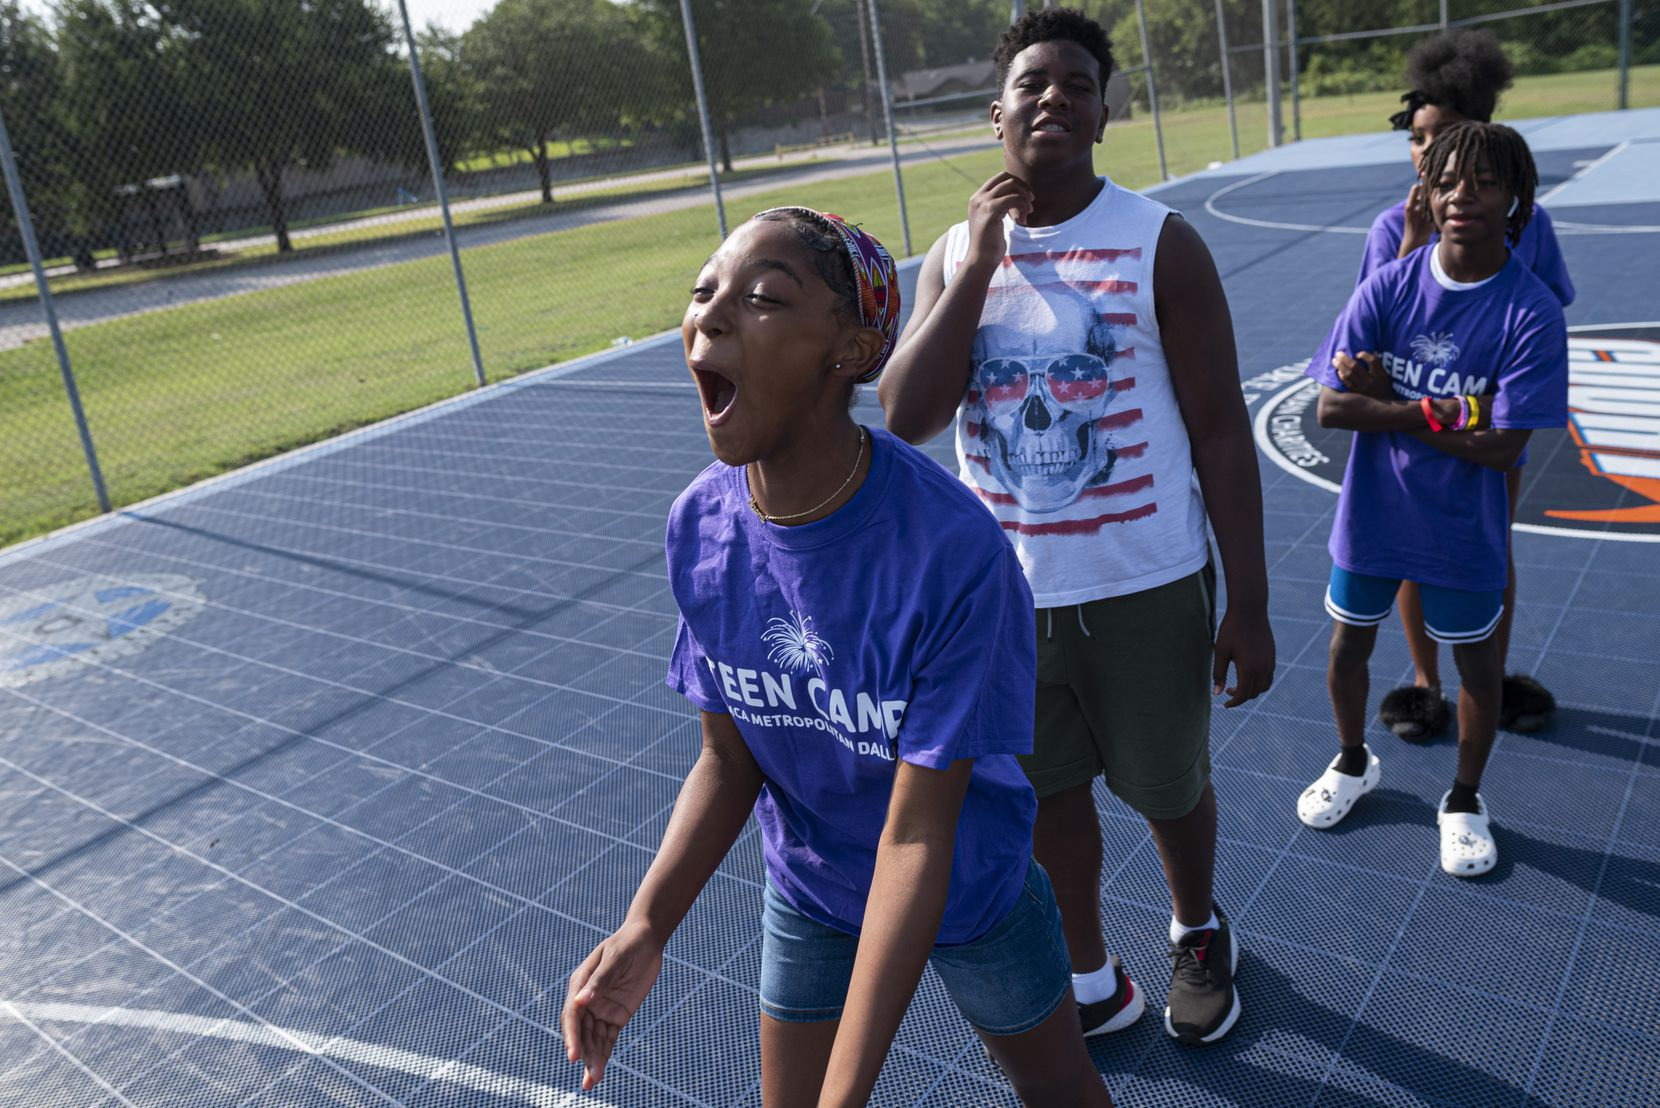 Namoi Robinson, 13, center, reacts after shooting a basketball from the three-point-line during a game of Knockout at the Moorland YMCA in south Dallas. YMCA and Rising Blazers, a UNT Dallas initiative, have partnered up to offer kids ages 10-17 free YMCA membership and summer programs and the Park South and Moorland YMCAs. The free summer programs offer swimming, e-sports and a variety of other activities to keep teens busy.